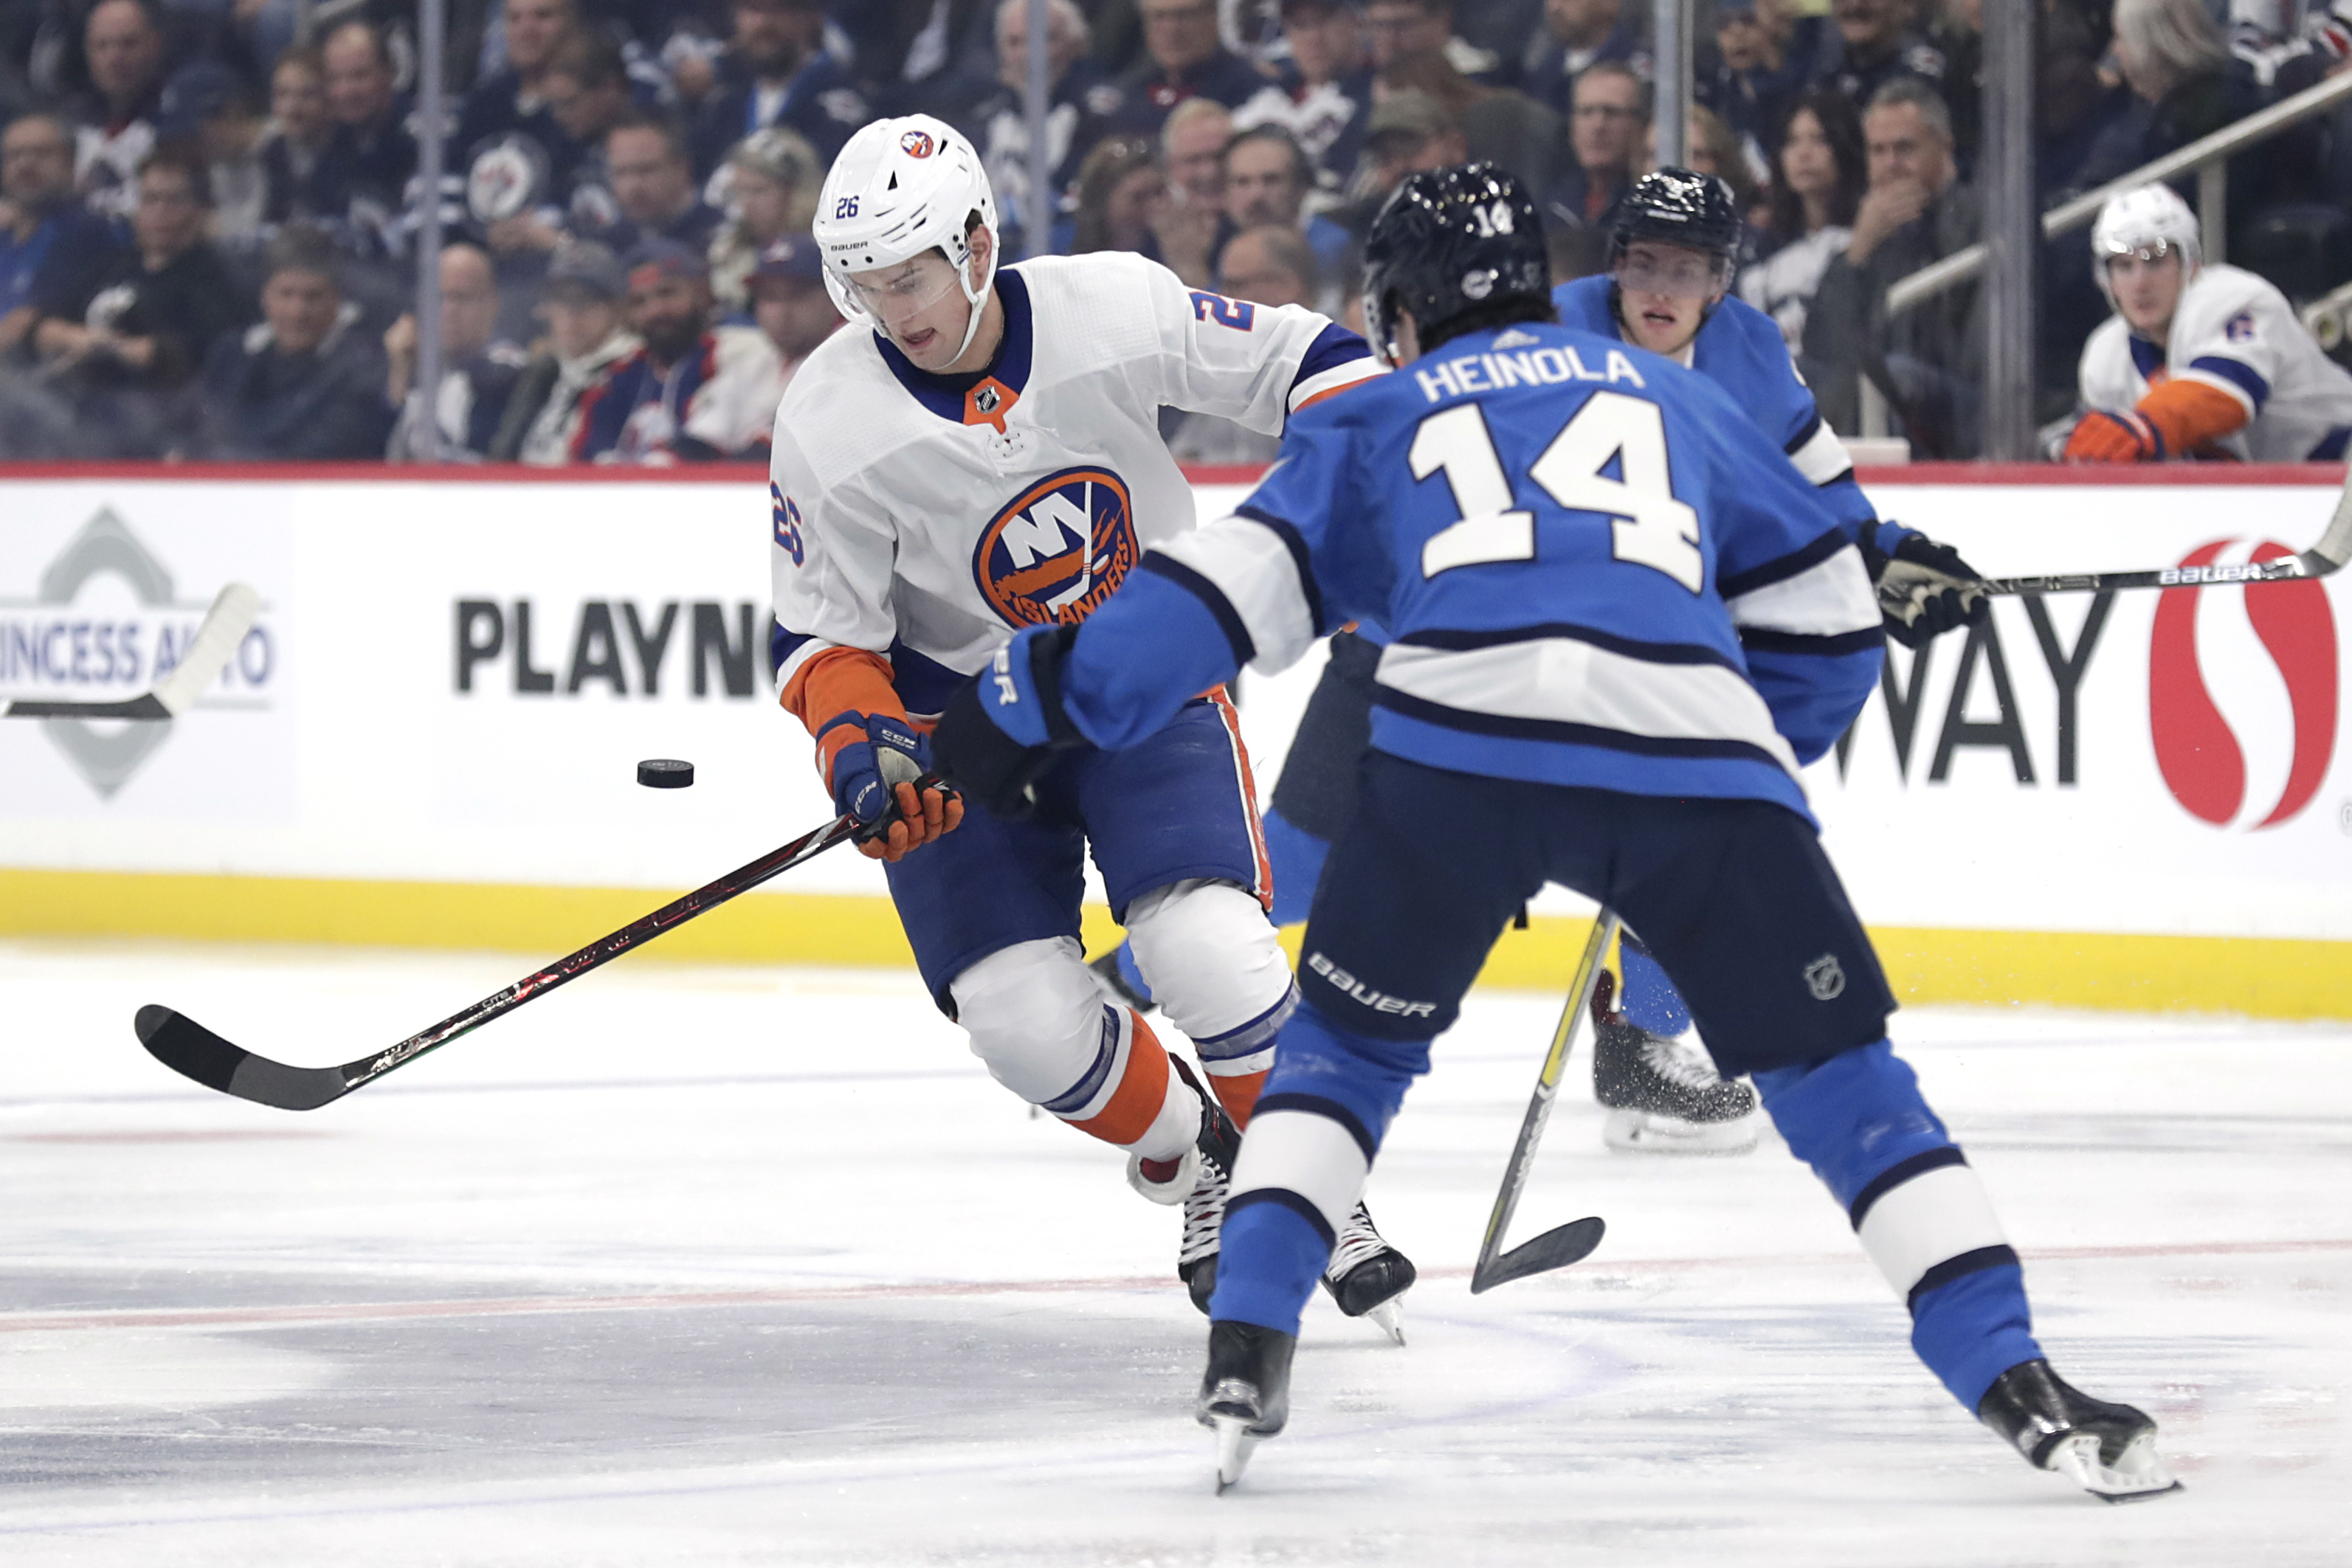 Oct 17, 2019; Winnipeg, Manitoba, CAN; New York Islanders right wing Oliver Wahlstrom (26) tries to control the puck from Winnipeg Jets defenseman Ville Heinola (14) in the first period at Bell MTS Place. Mandatory Credit: James Carey Lauder-USA TODAY Sports